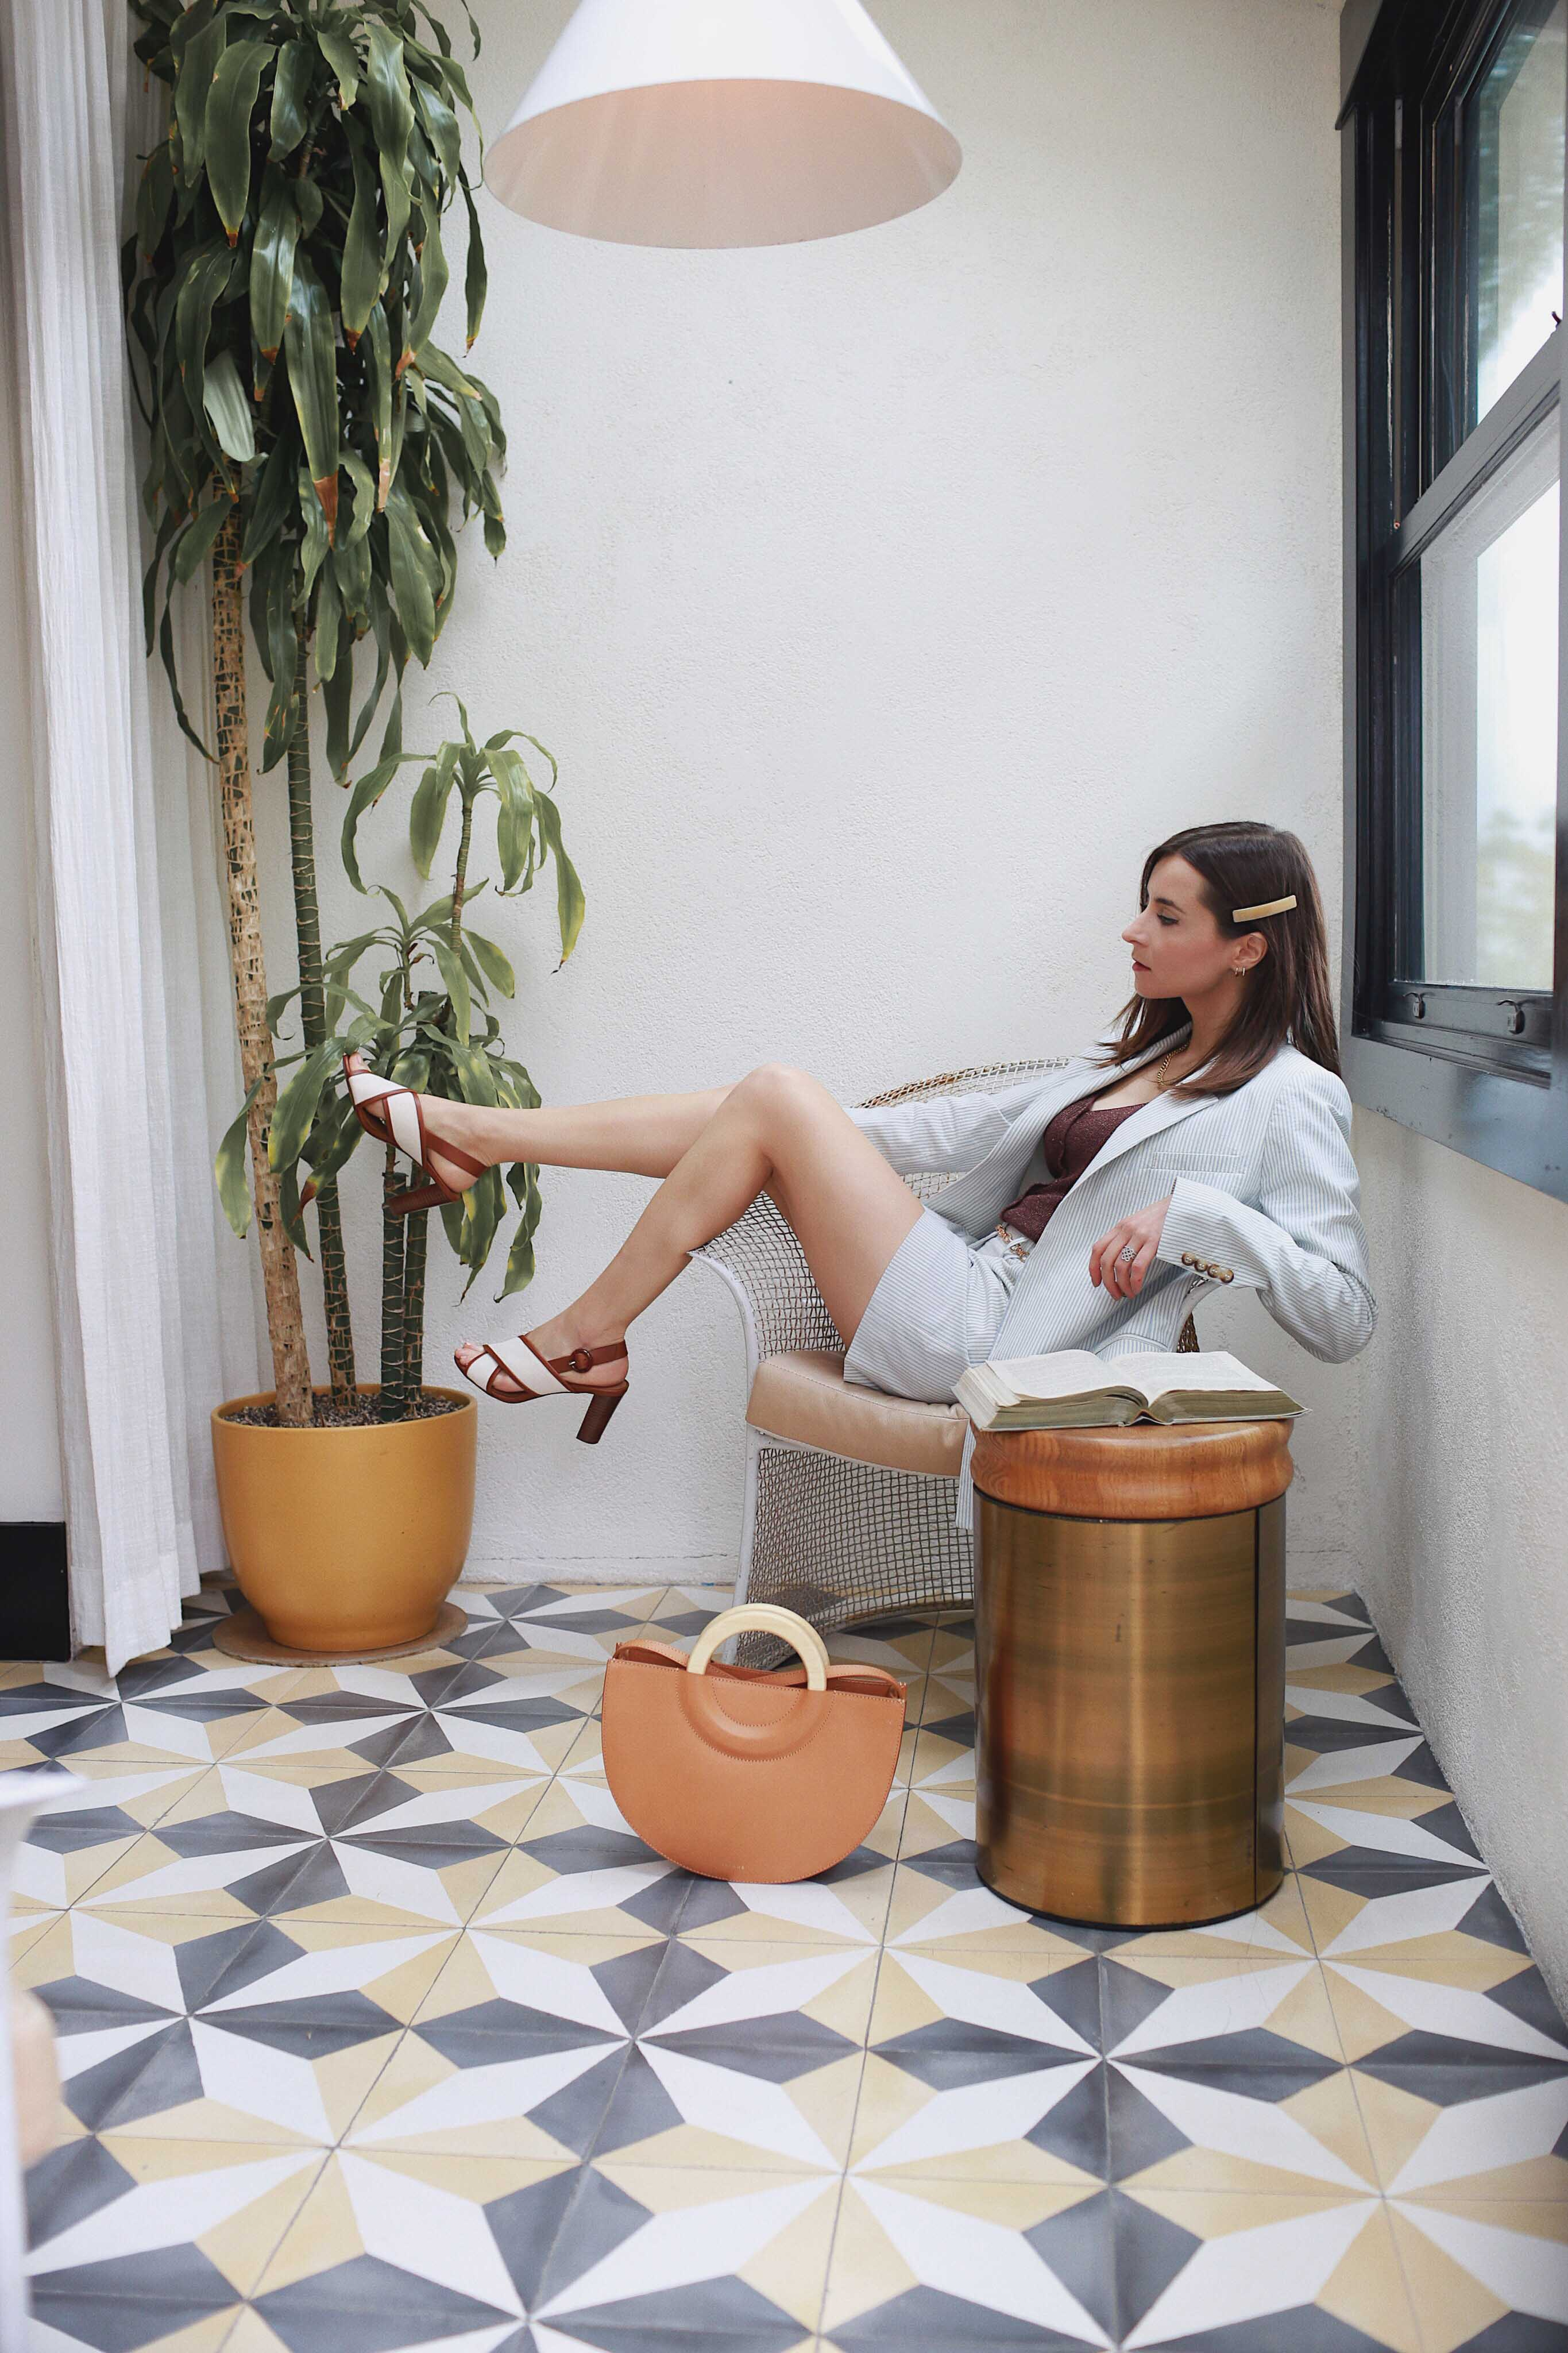 Discover the hidden gem Hotel Covell: a small luxury boutique hotel in Los Angeles. Parisian vibes and opulant rooms: Hotel Covell is a luxury independent hotel for short / long term stay. Wearing Sezane